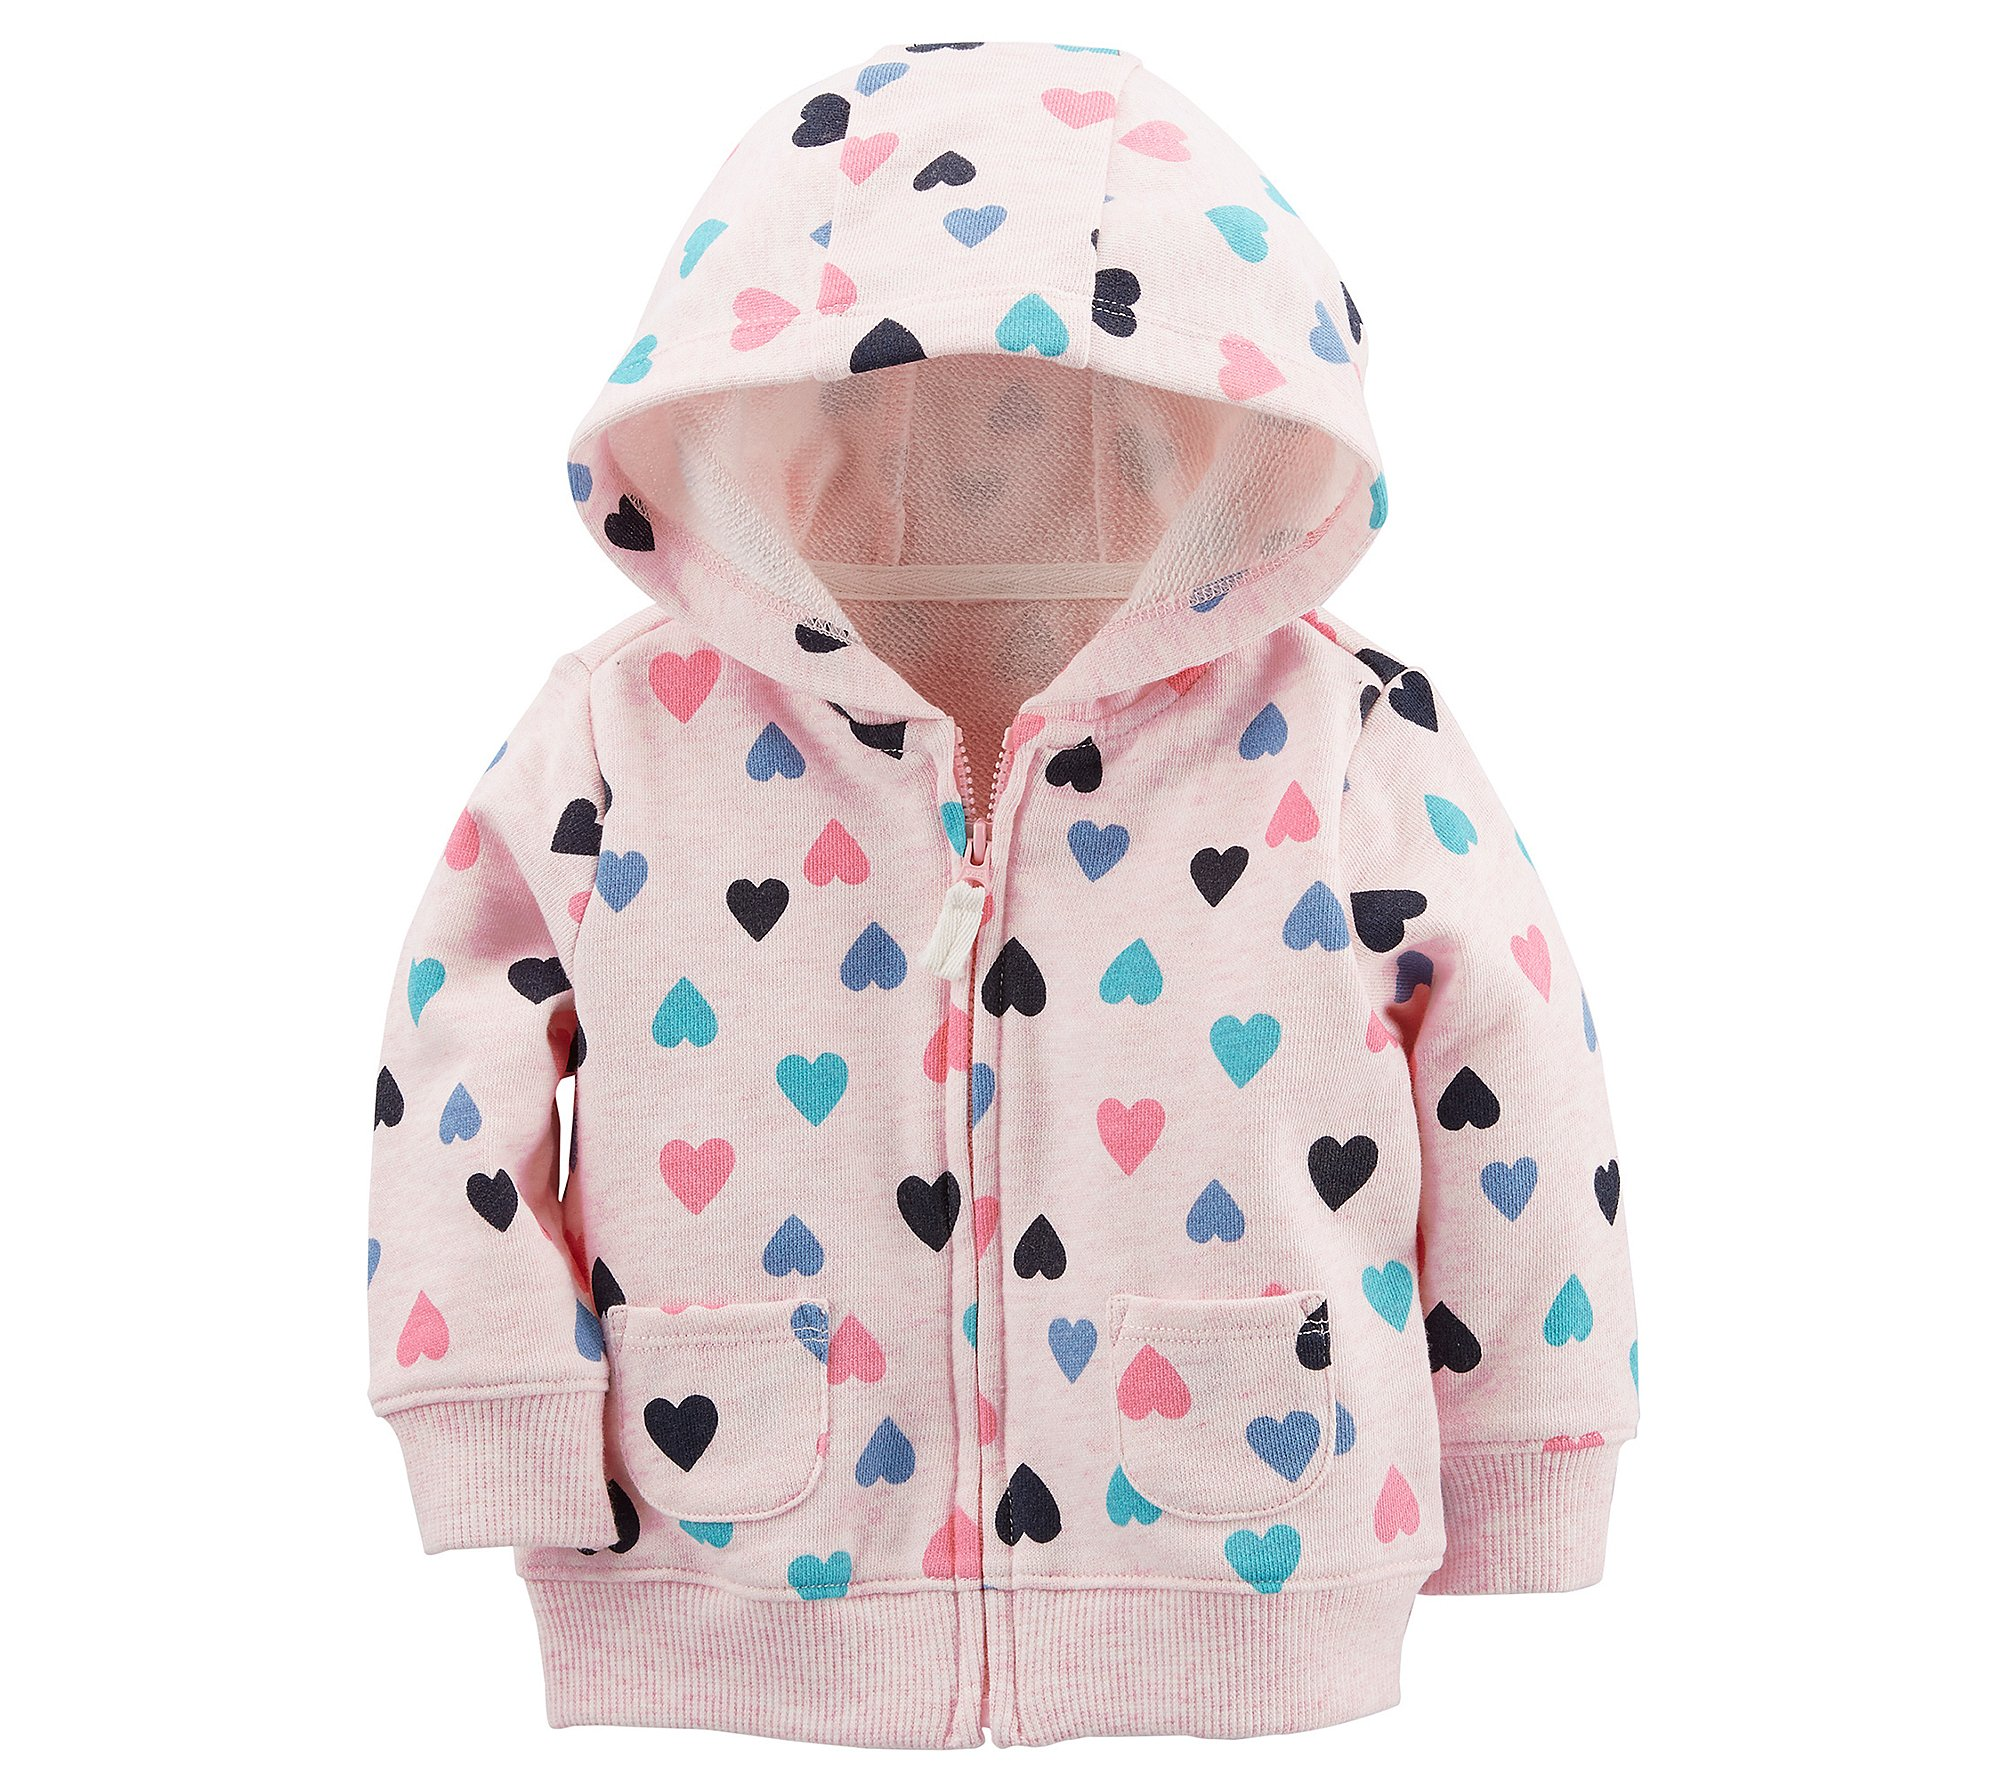 Carter's Baby Girls' Heart Print Zip up Hoodie 3 Months by Carter's